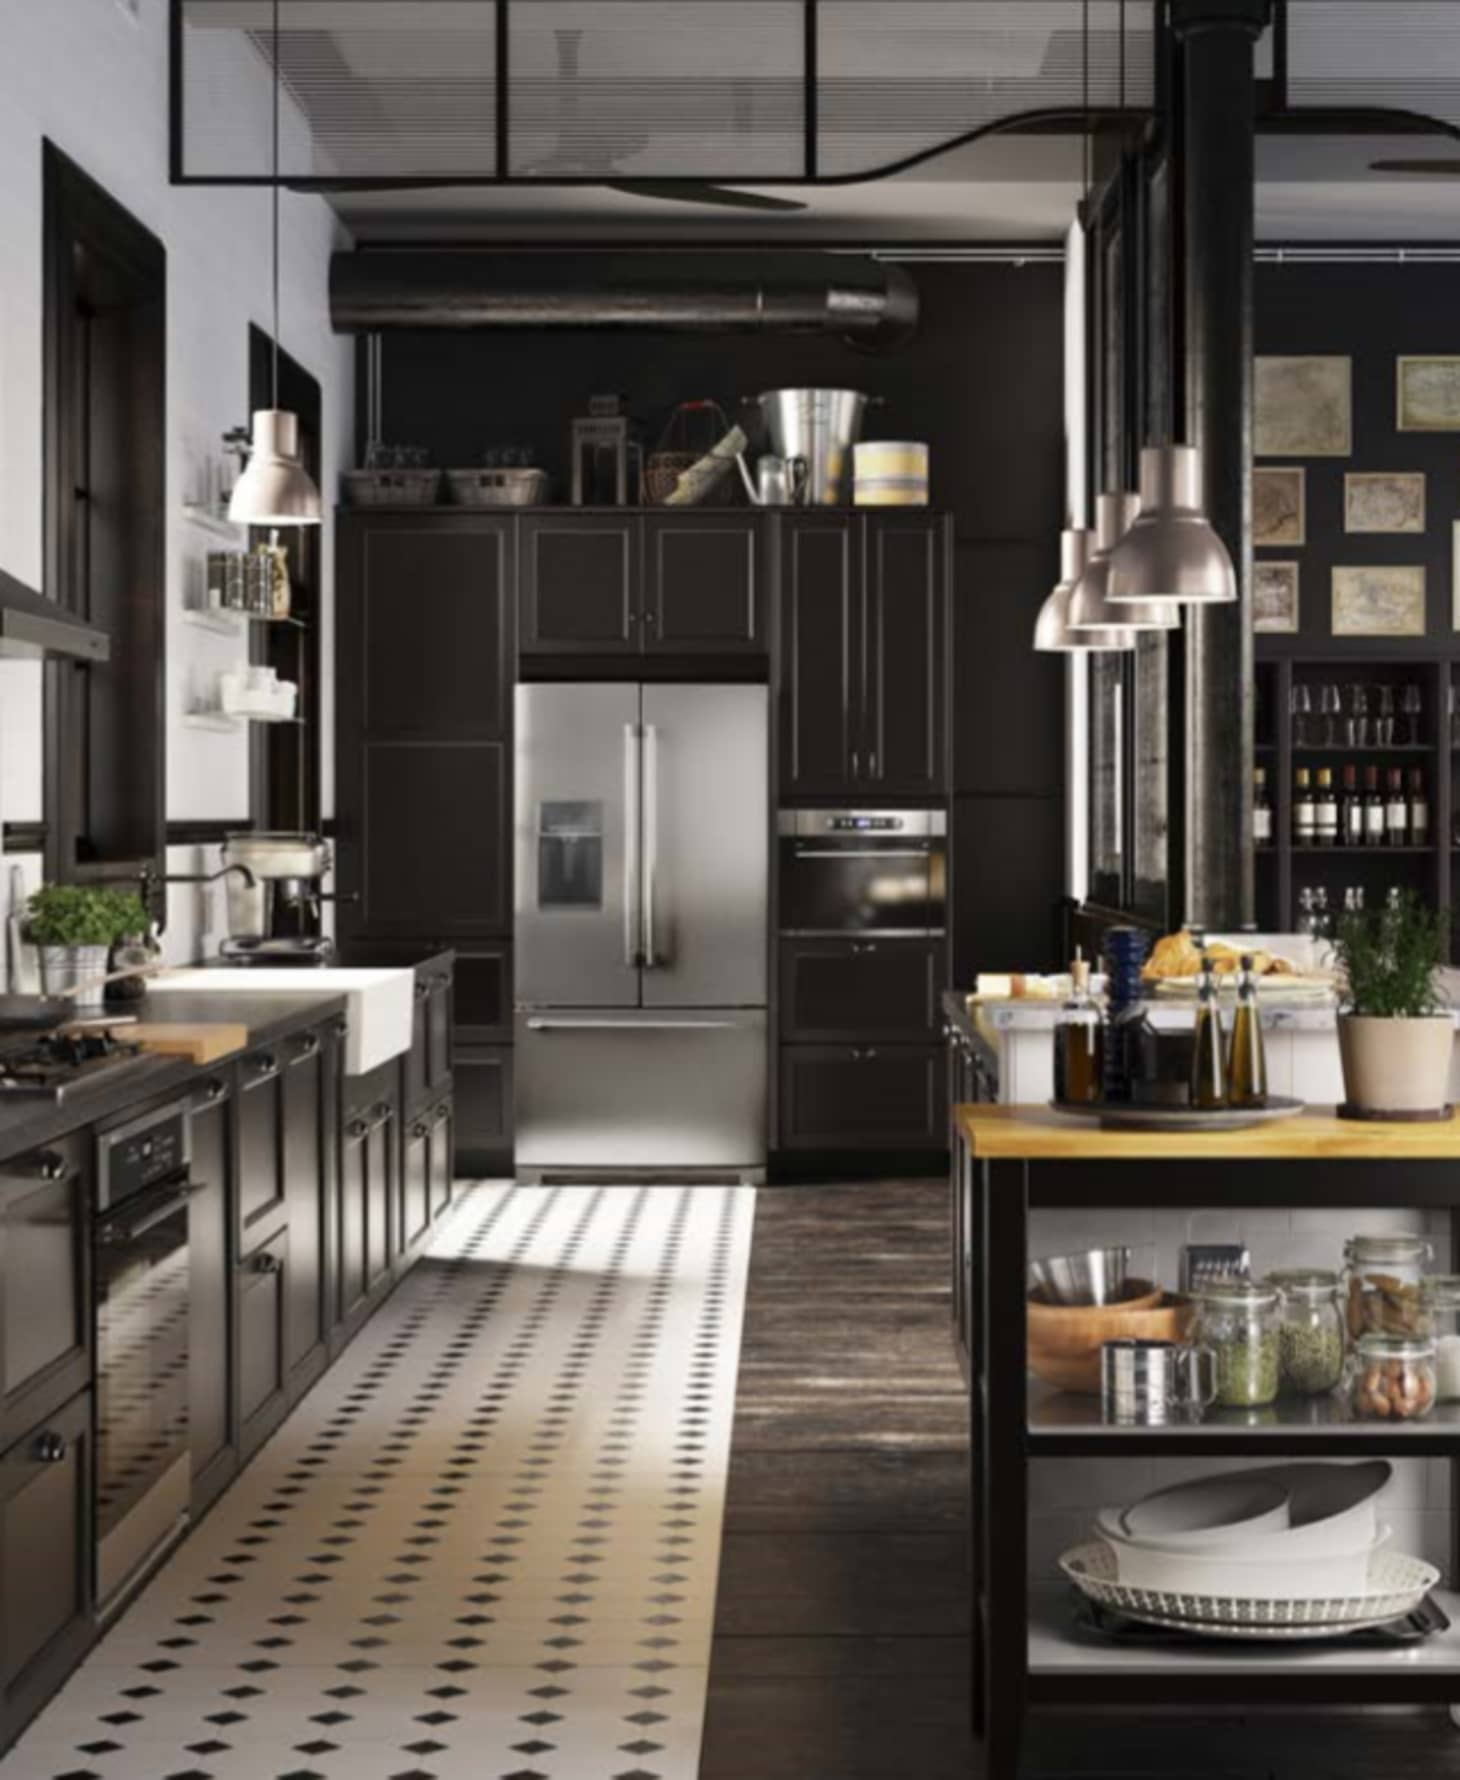 Consumers Kitchen Cabinets: IKEA SEKTION New Kitchen Cabinet Guide: Photos, Prices